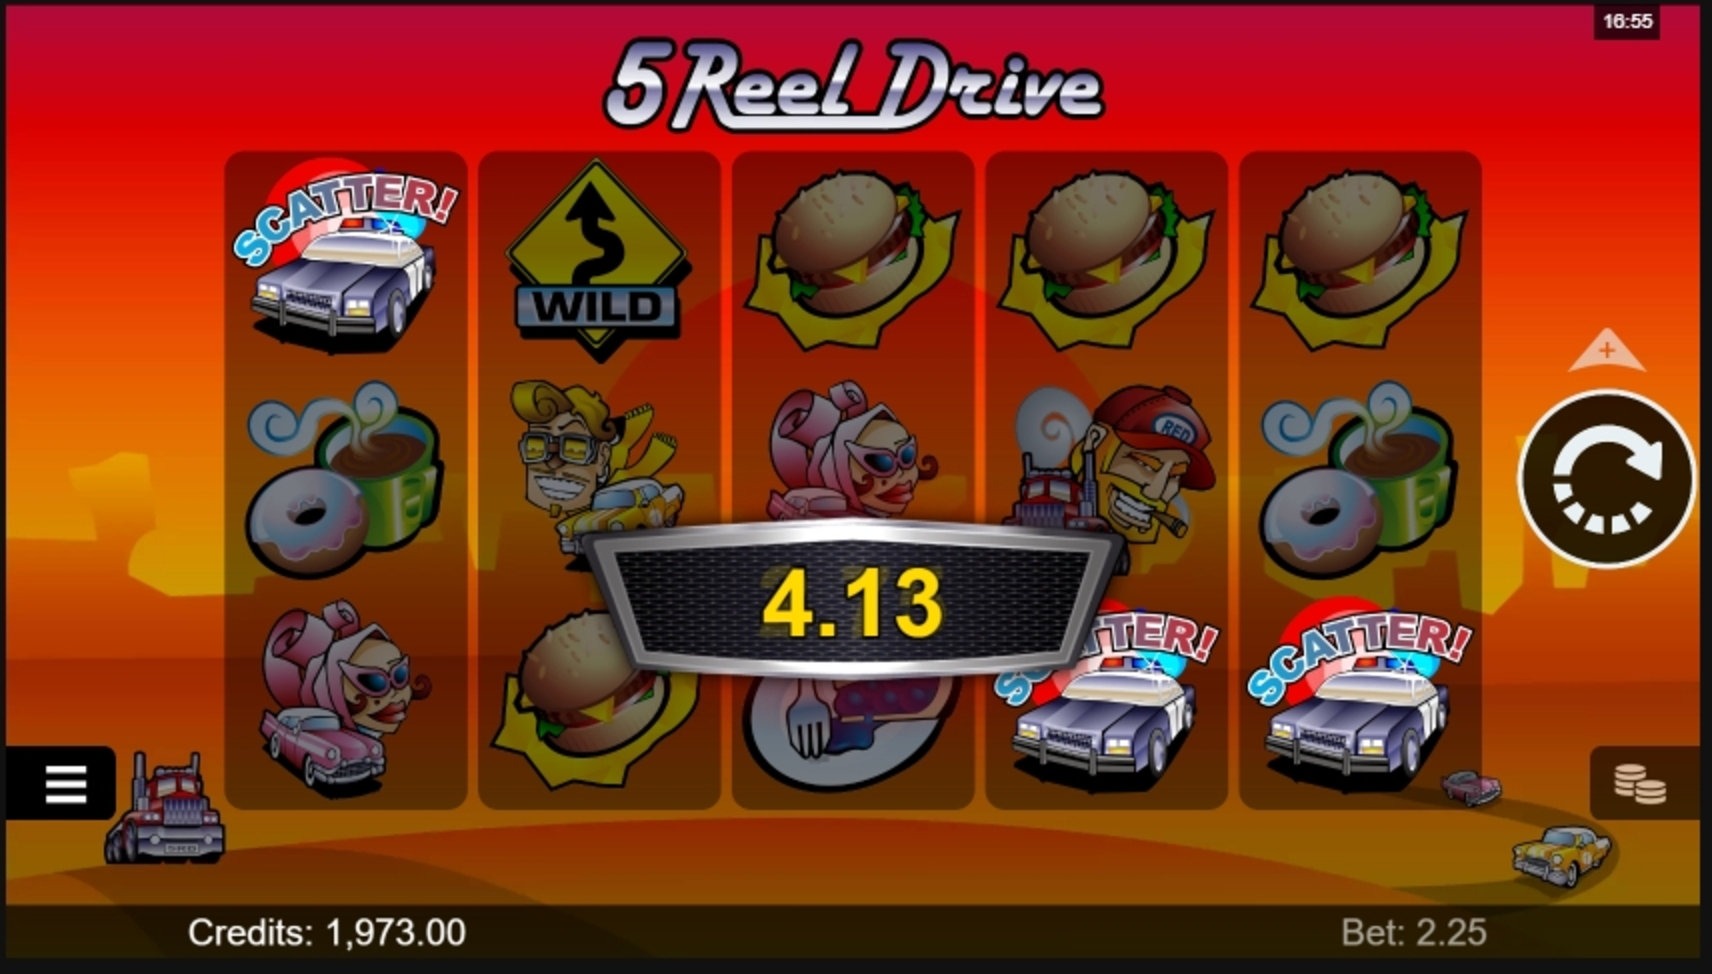 Win Money in 5 Reel Drive Free Slot Game by Microgaming